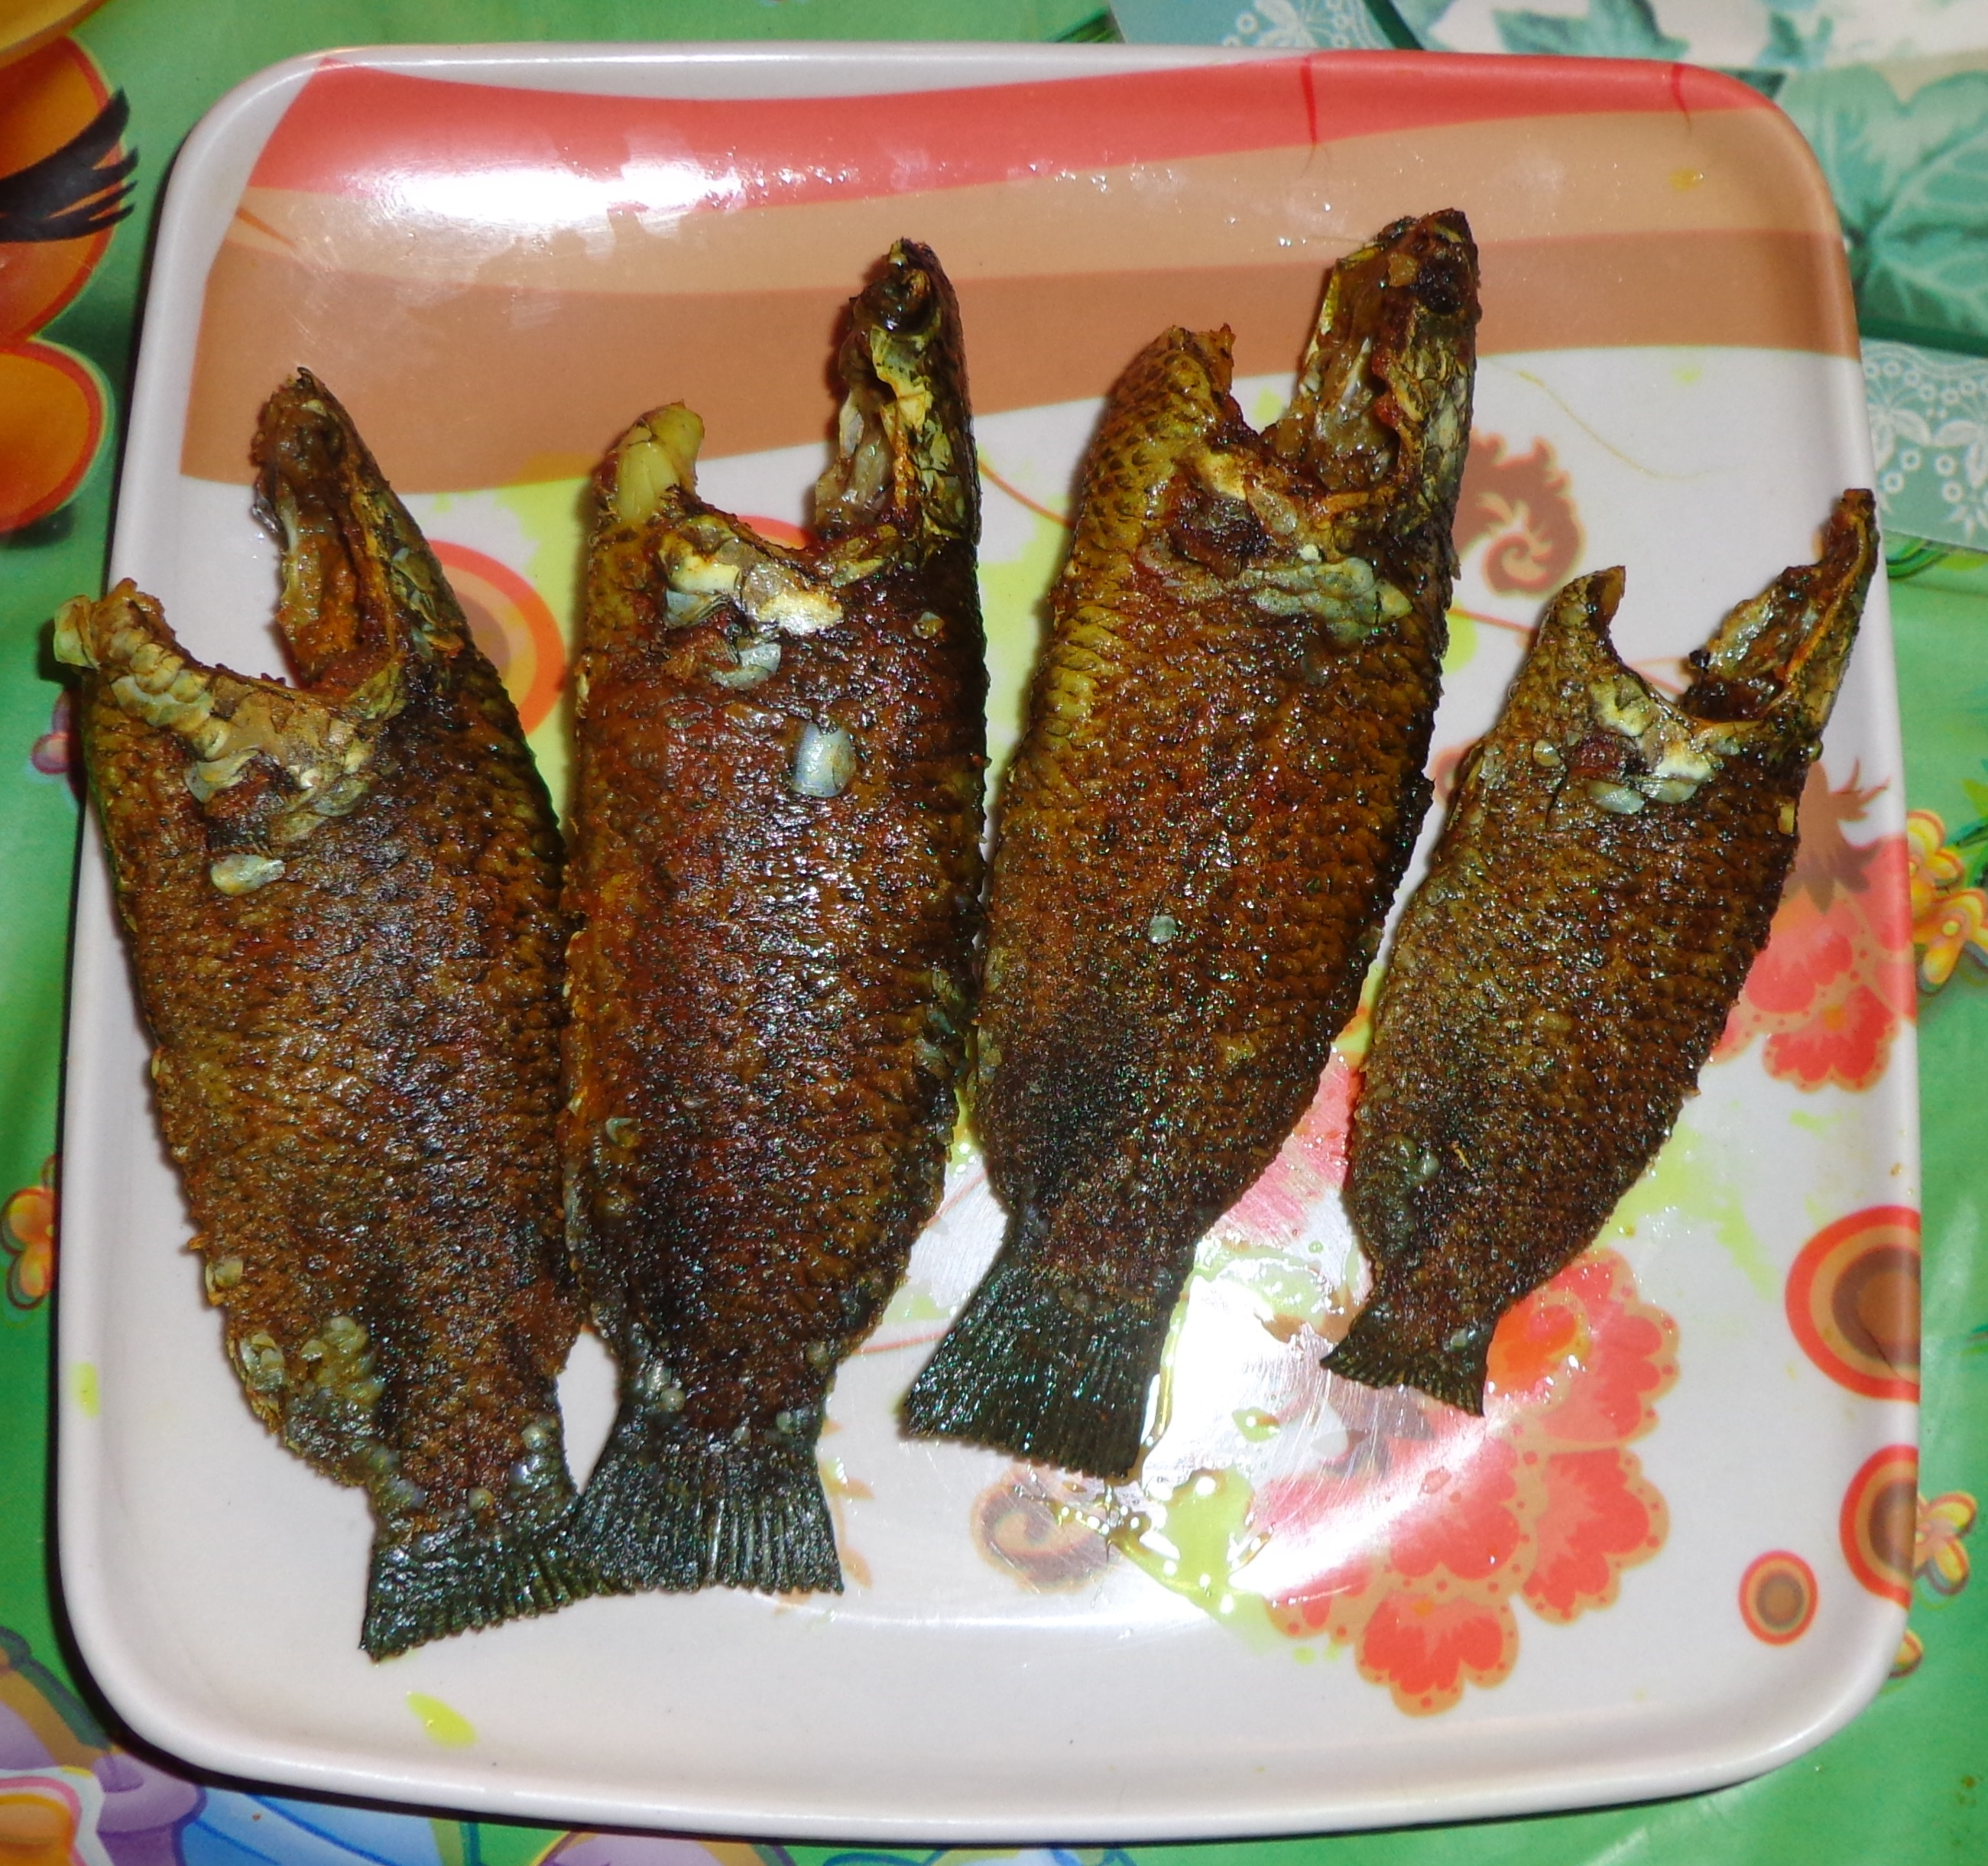 Tel koi tarnistha cook book for Koi carp fry